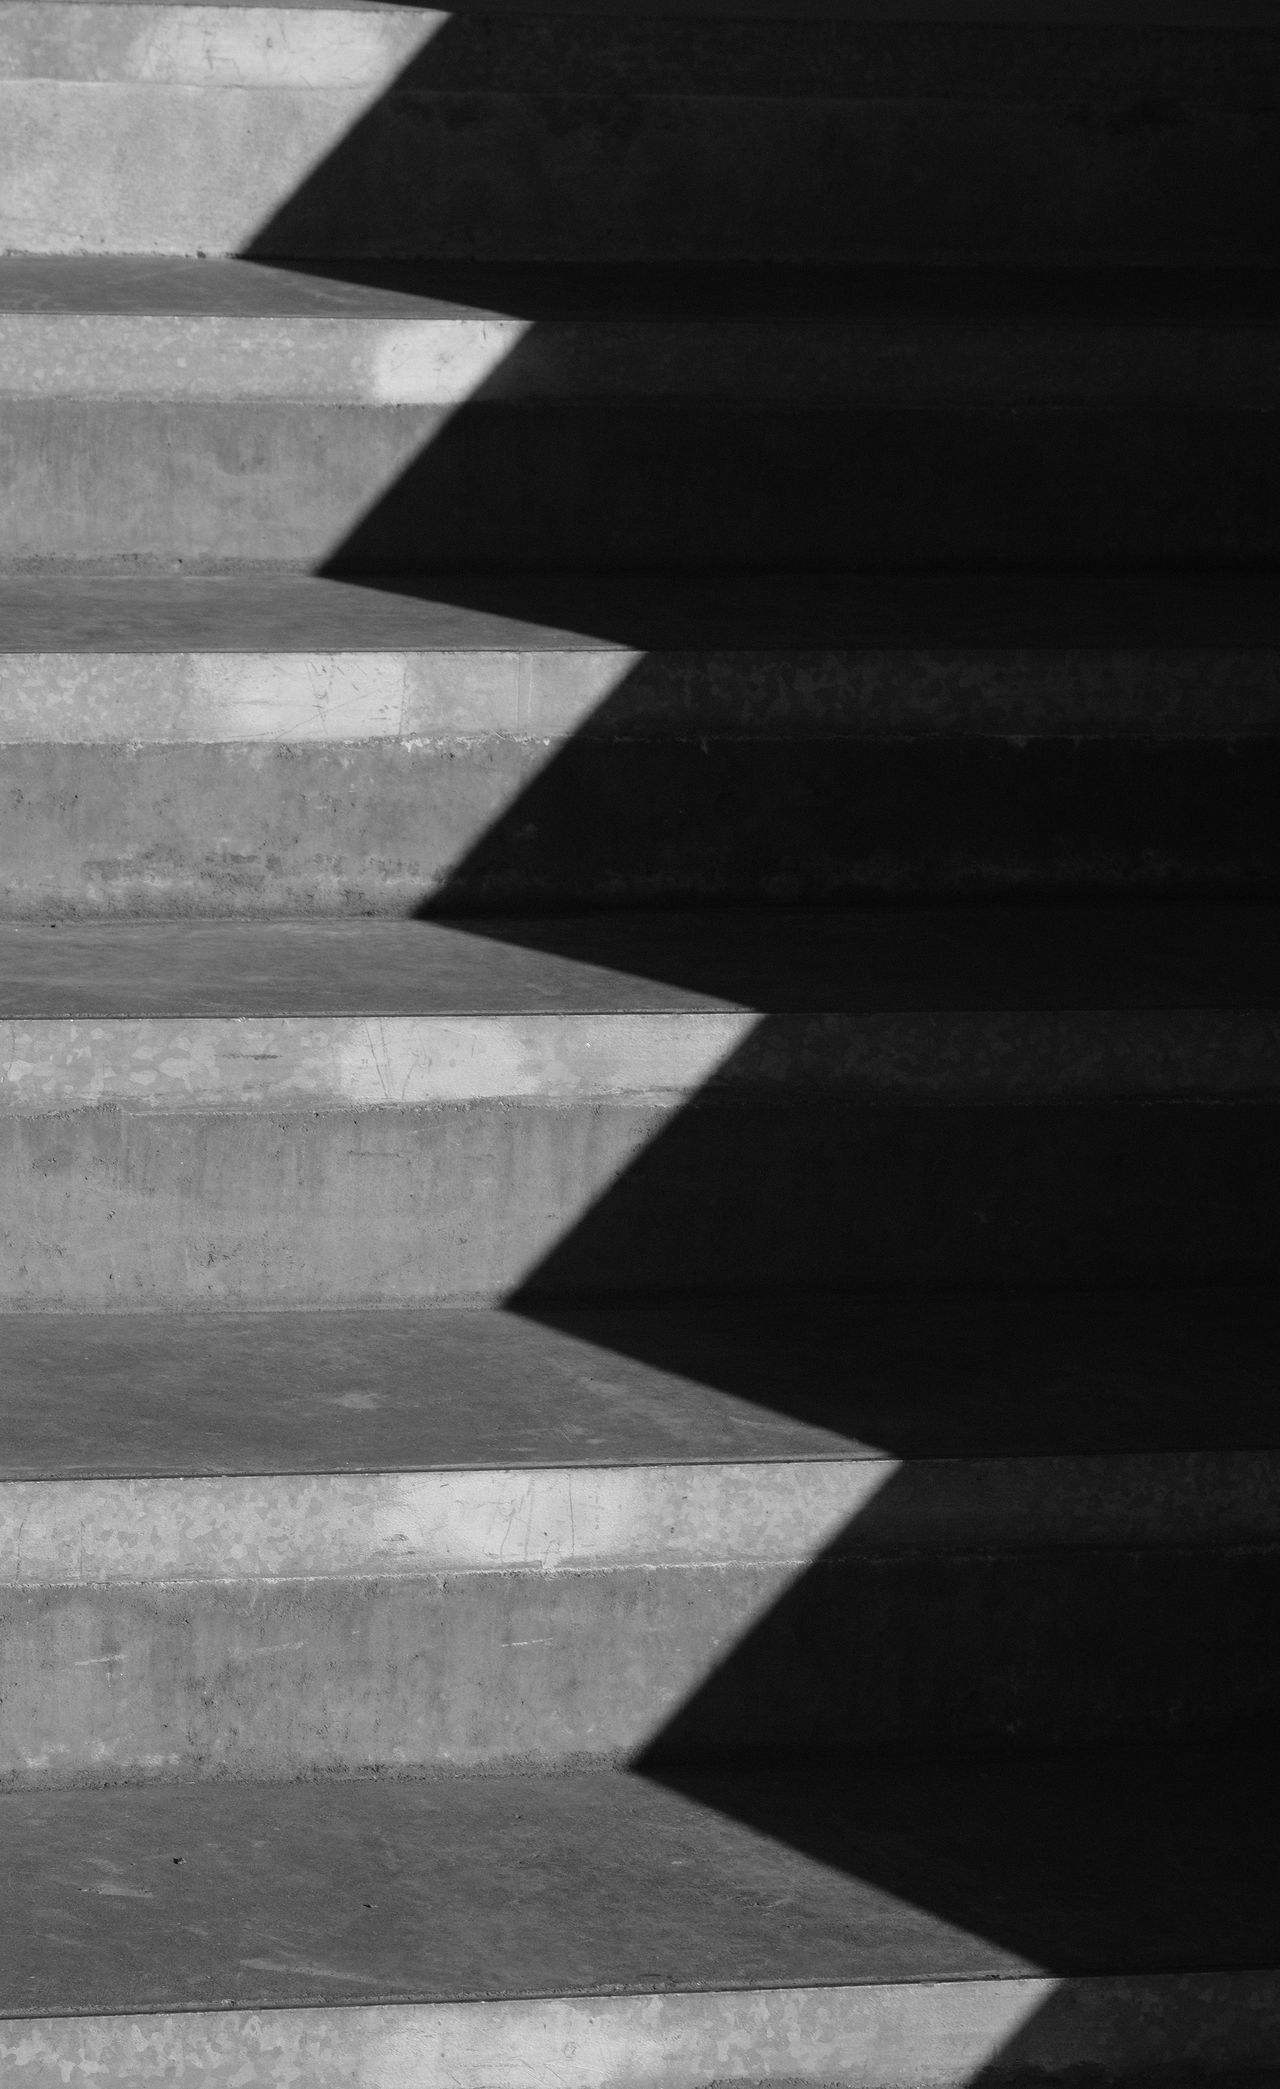 Black And White Blackandwhite Shadows Shapes Shapes And Lines Shapes And Patterns  Stairs Steps